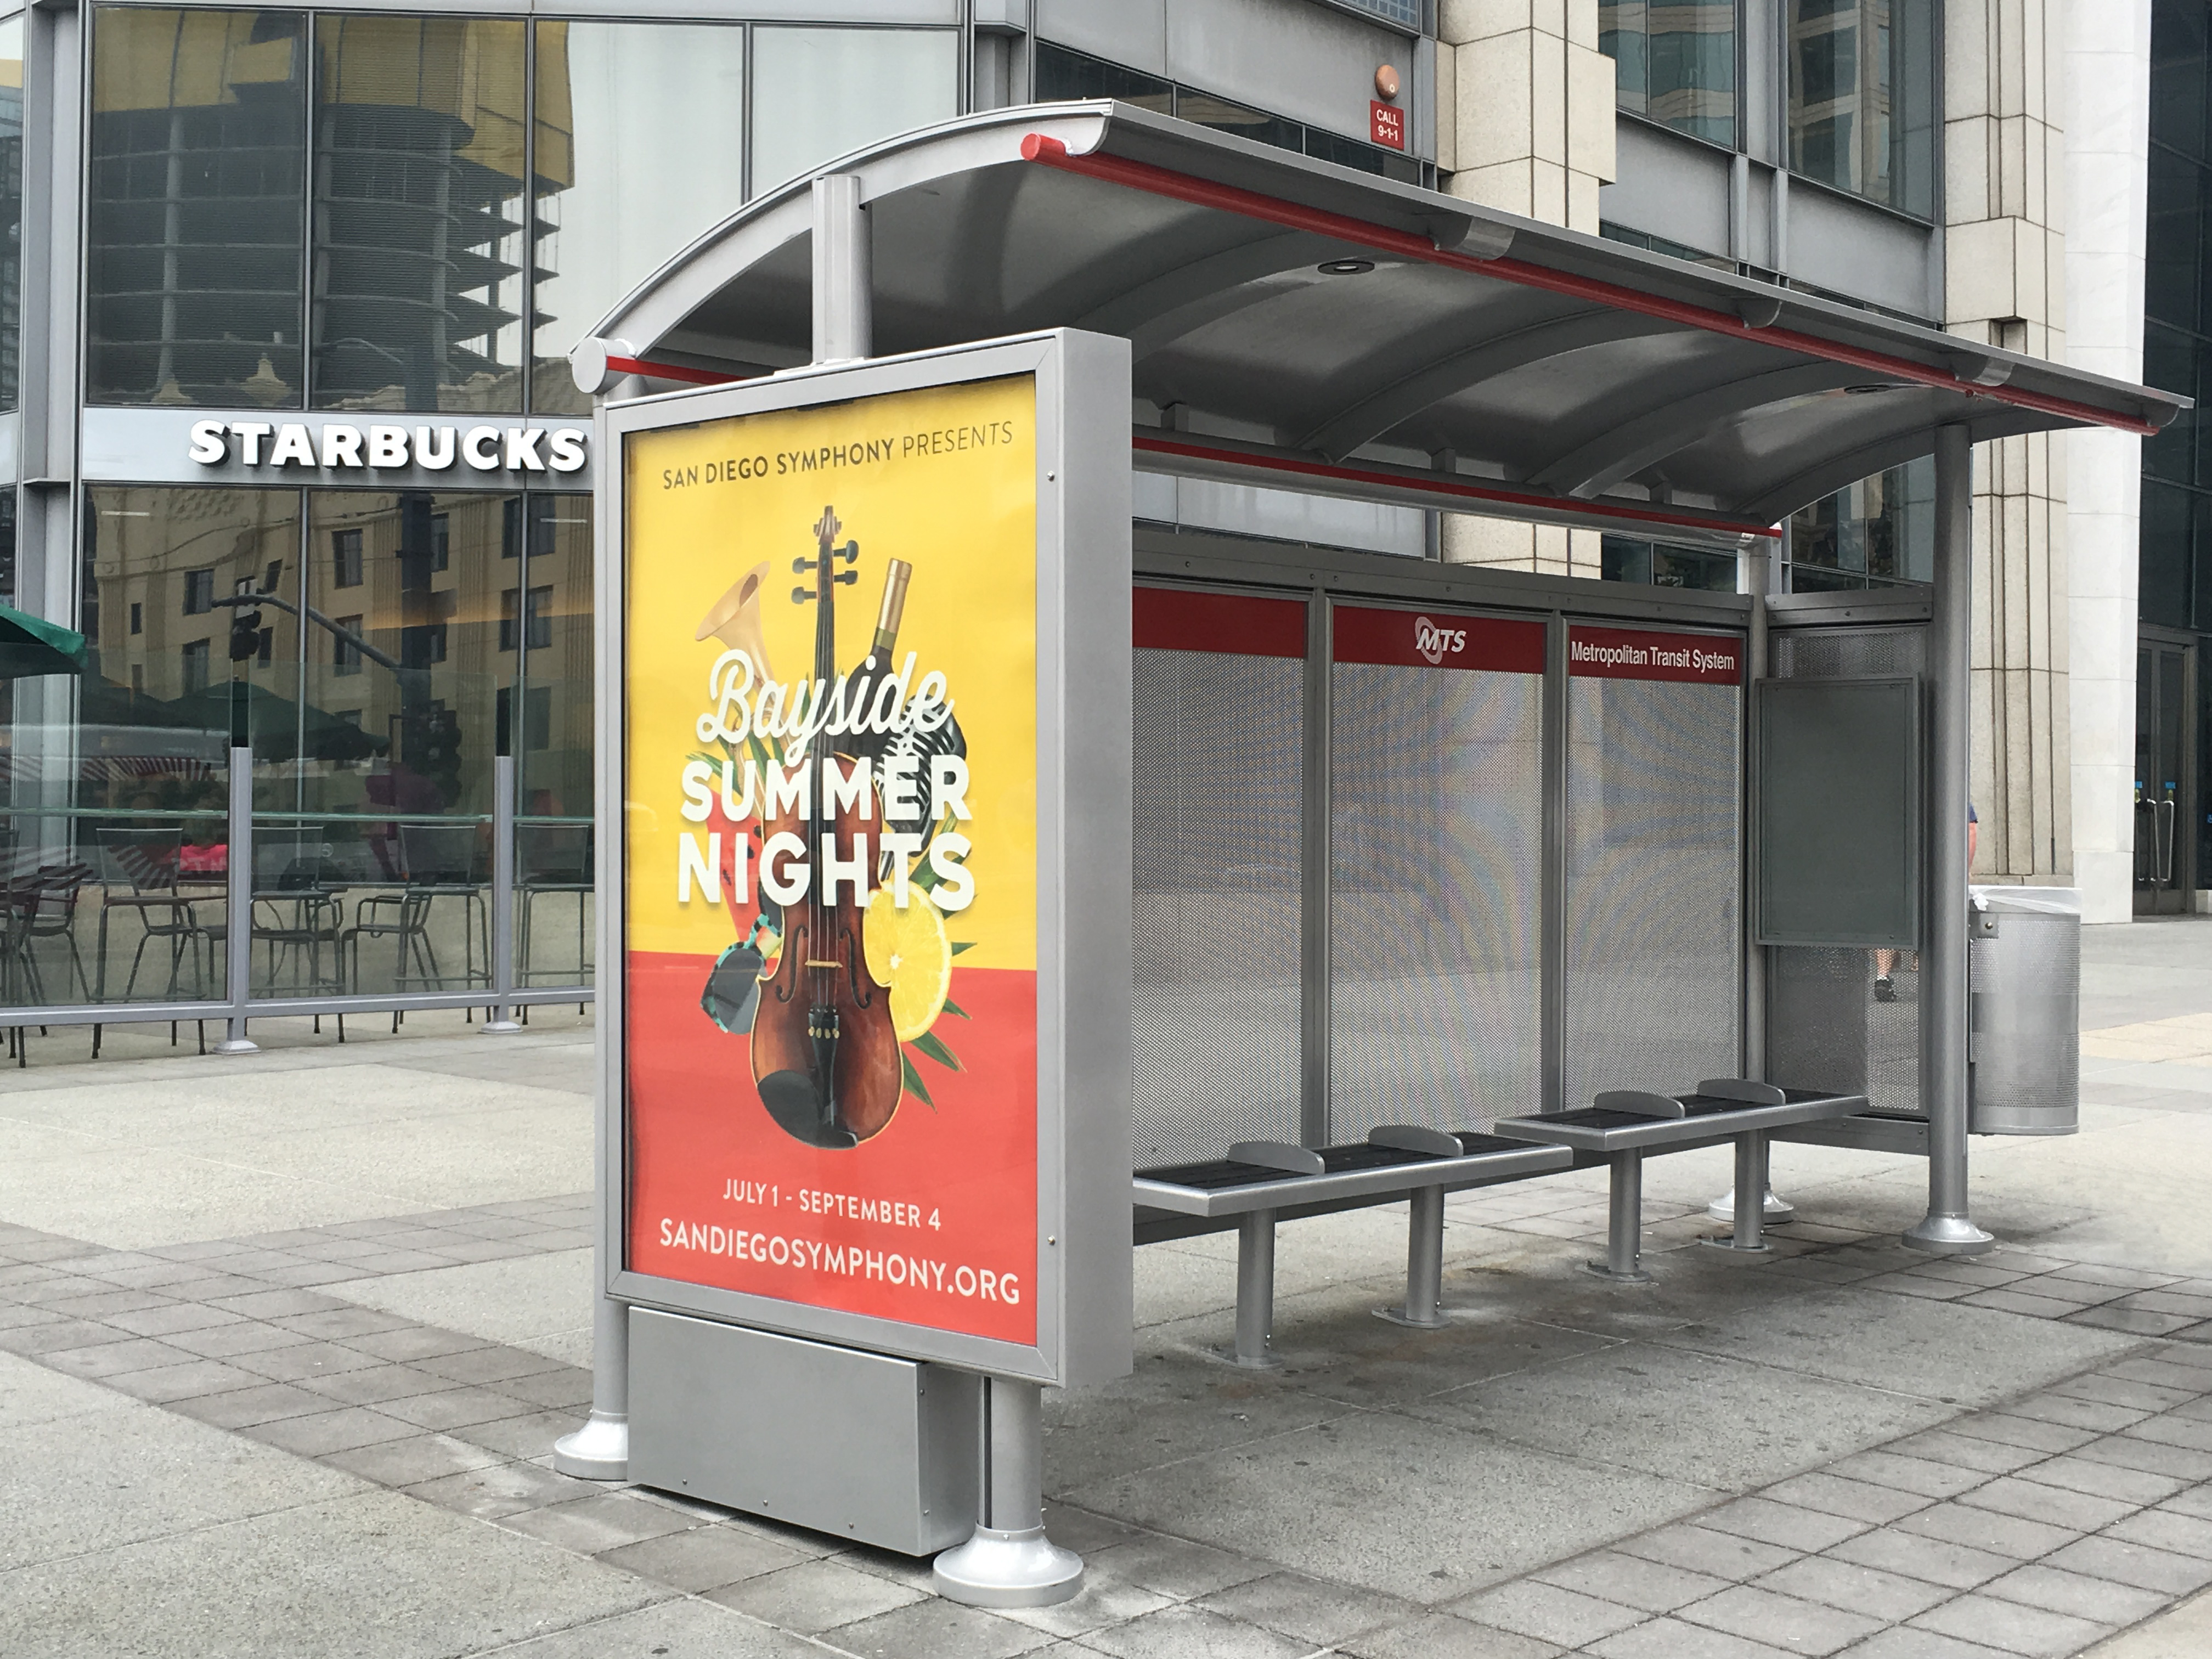 mts installs first of 600 new bus shelters slated for san diego